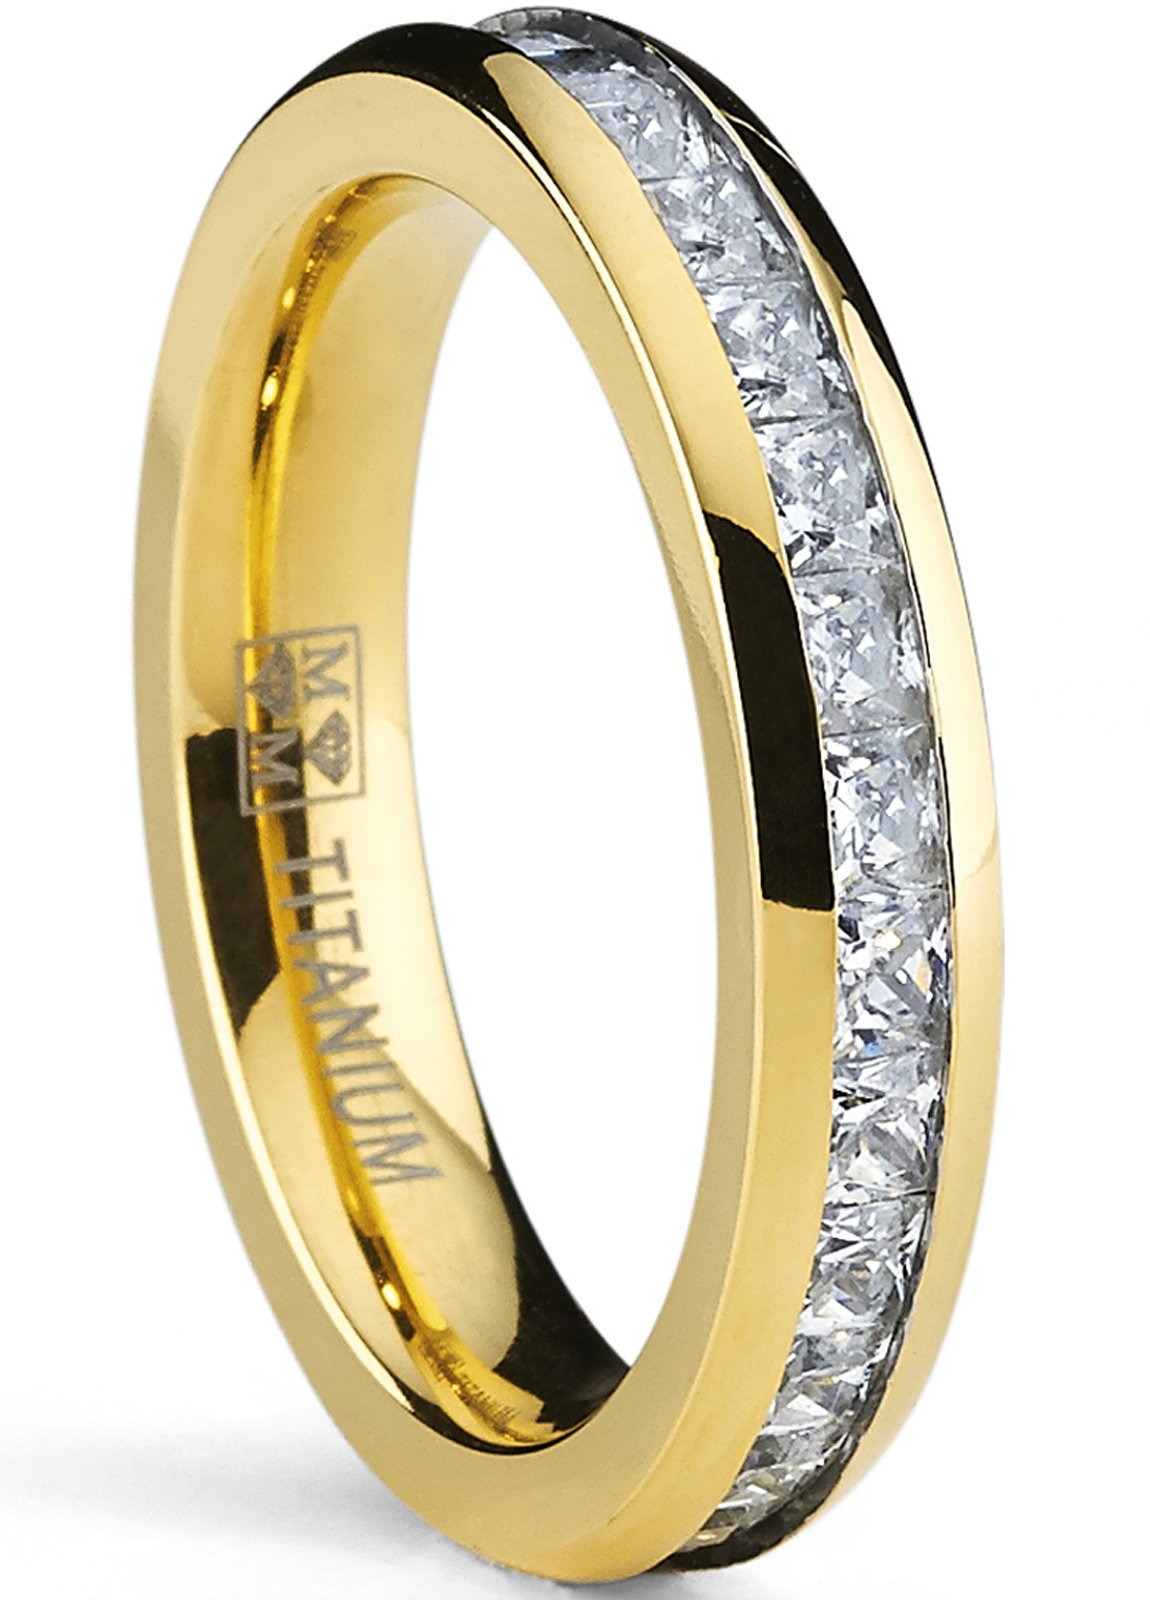 Metal Masters Co. 4MM Goldtone Plated Princess Cut women's Eternity Titanium Ring Wedding Band with Cubic Zirconia CZ 7